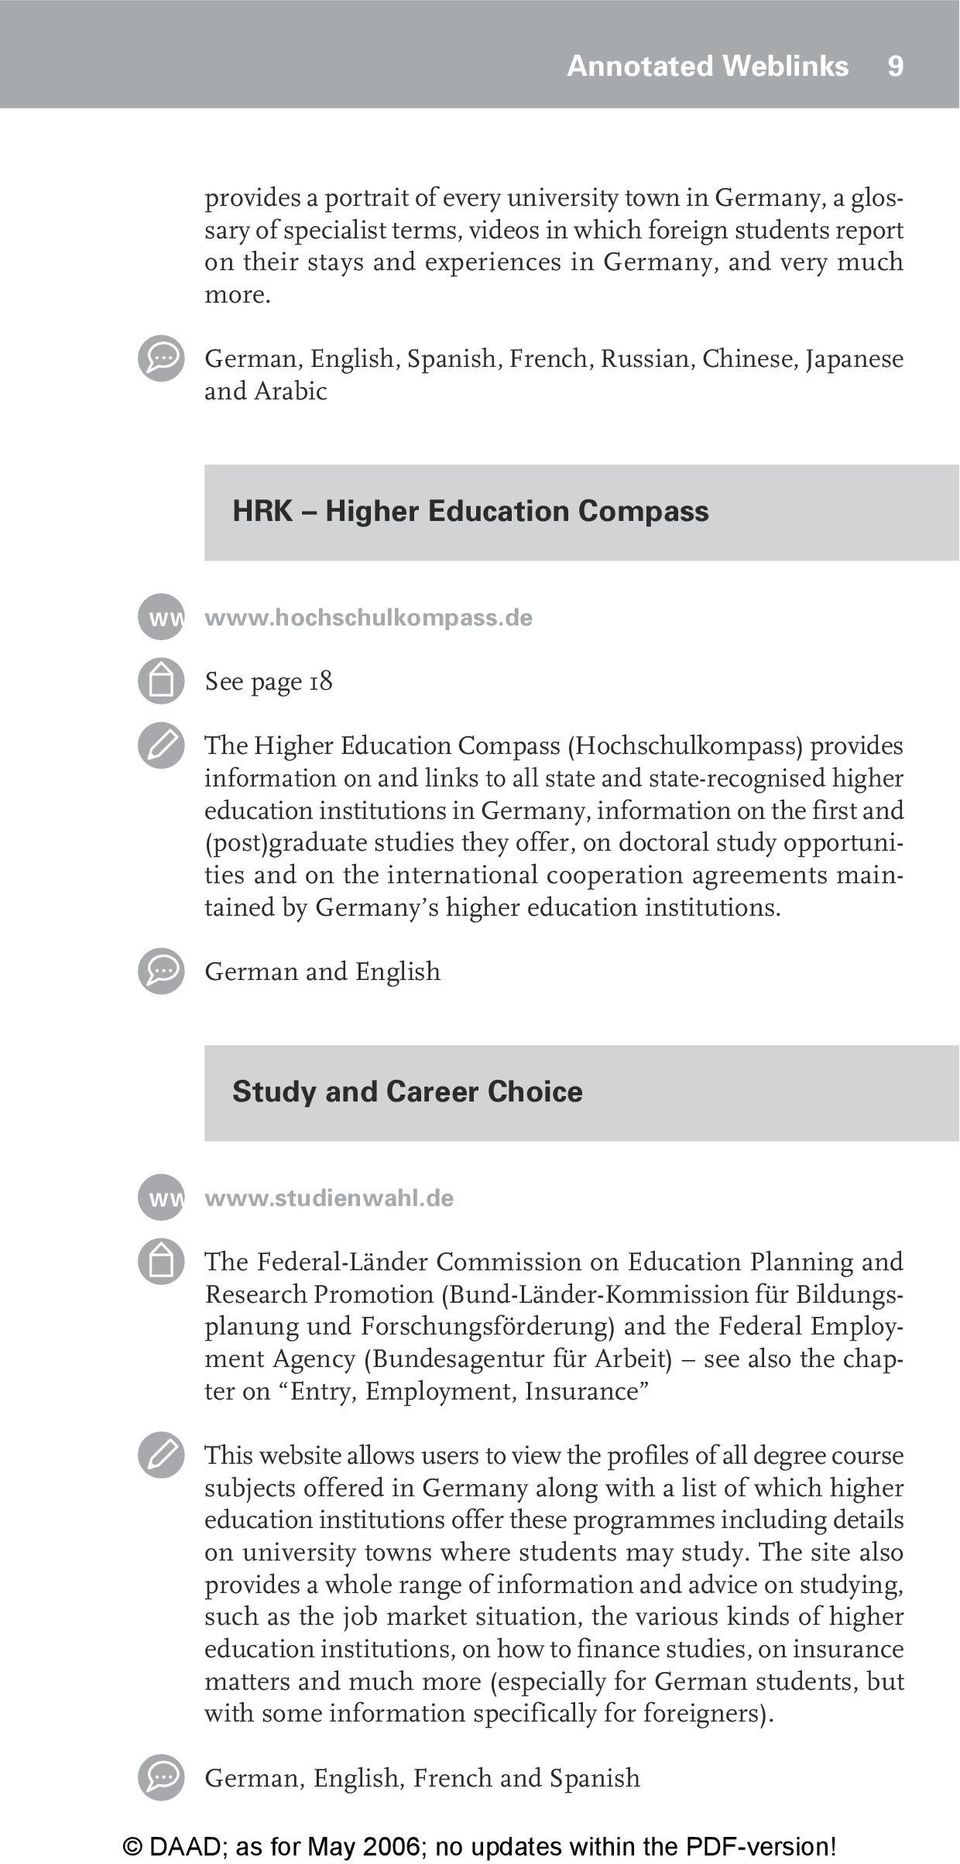 de See page 18 The Higher Education Compass (Hochschulkompass) provides information on and links to all state and state-recognised higher education institutions in Germany, information on the first